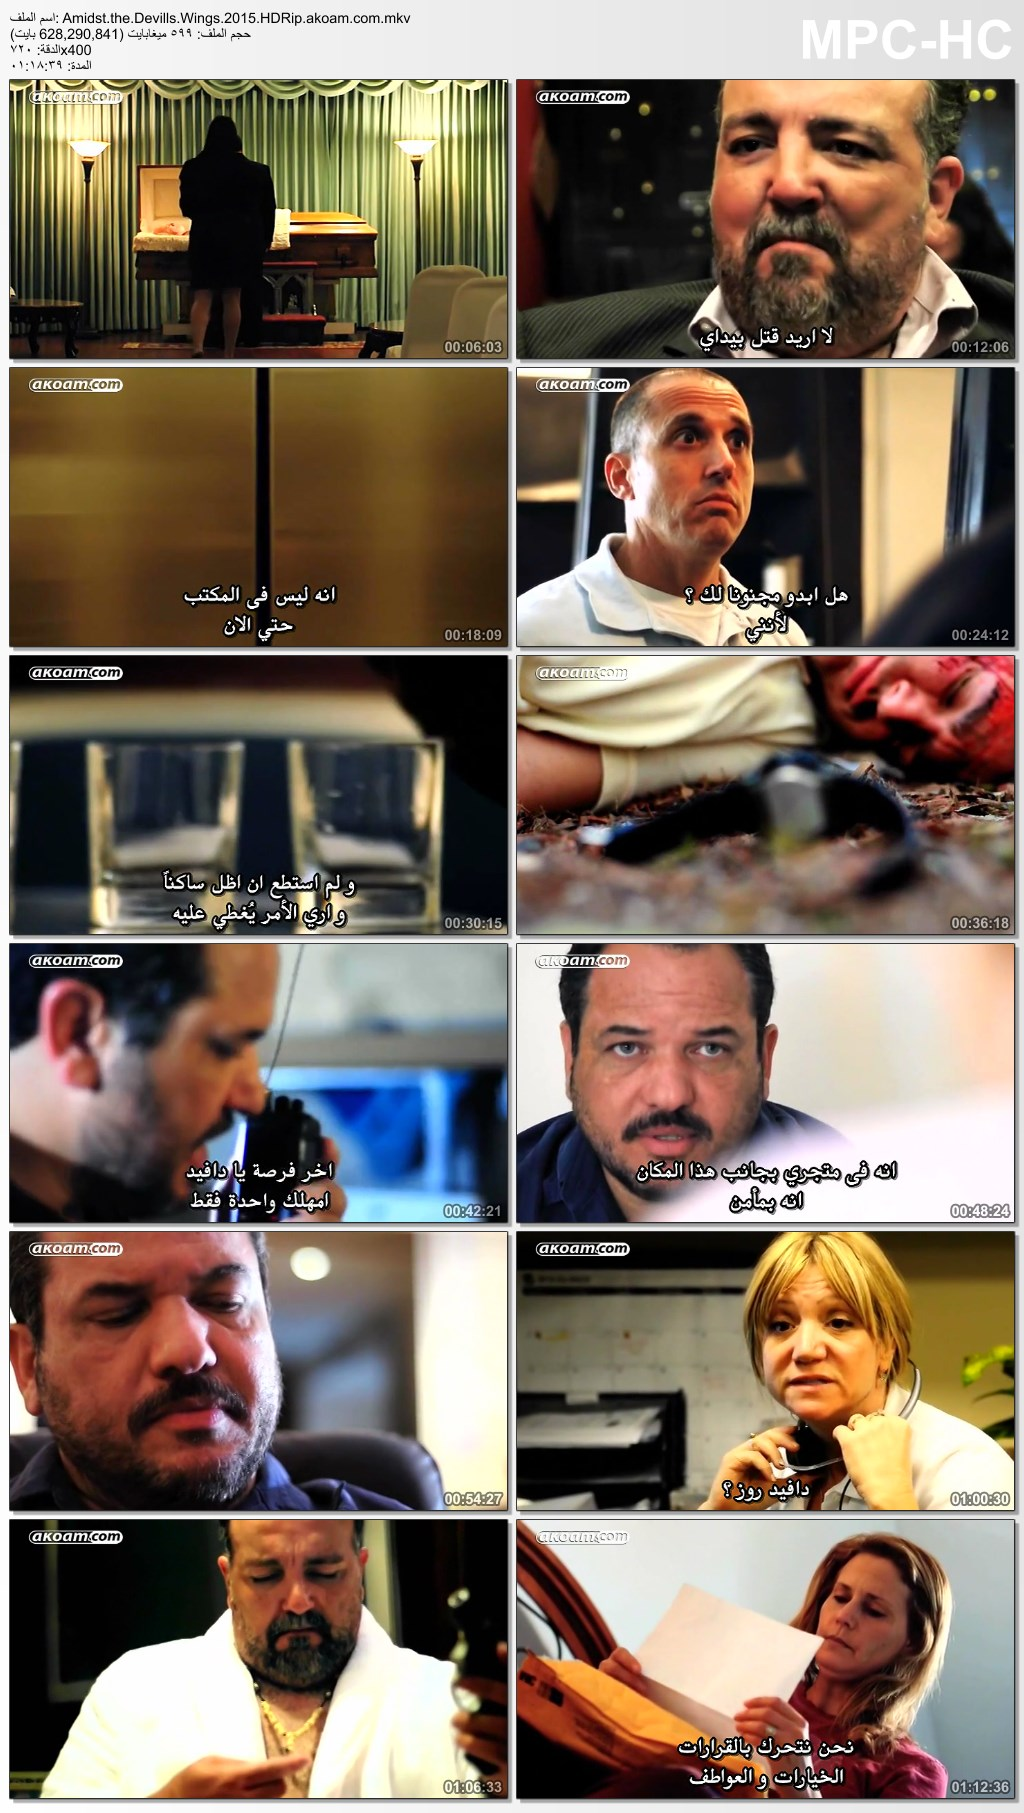 Amidst the Devils Wings,Amidst the Devils Wings 2014,الاكشن,الجريمة,الدراما